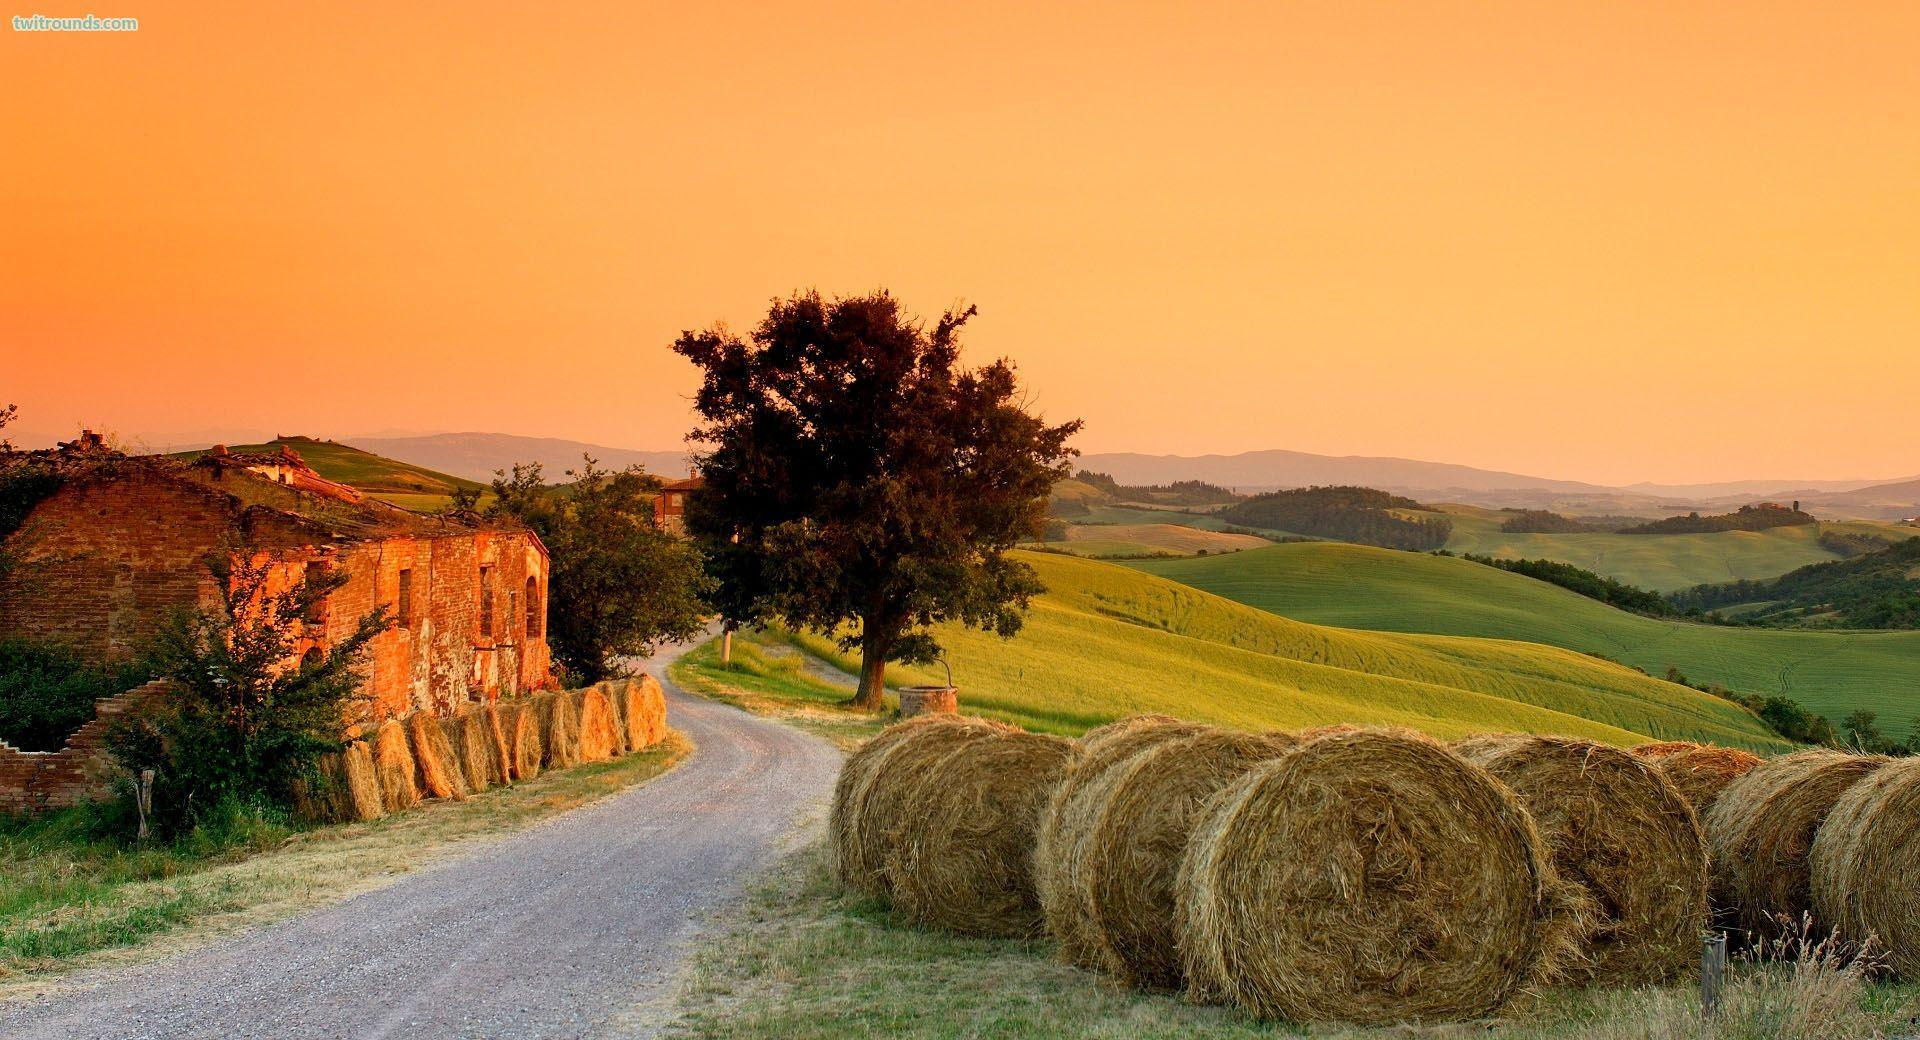 Tuscany wallpapers wallpaper cave for Immagini desktop hd 1920x1080